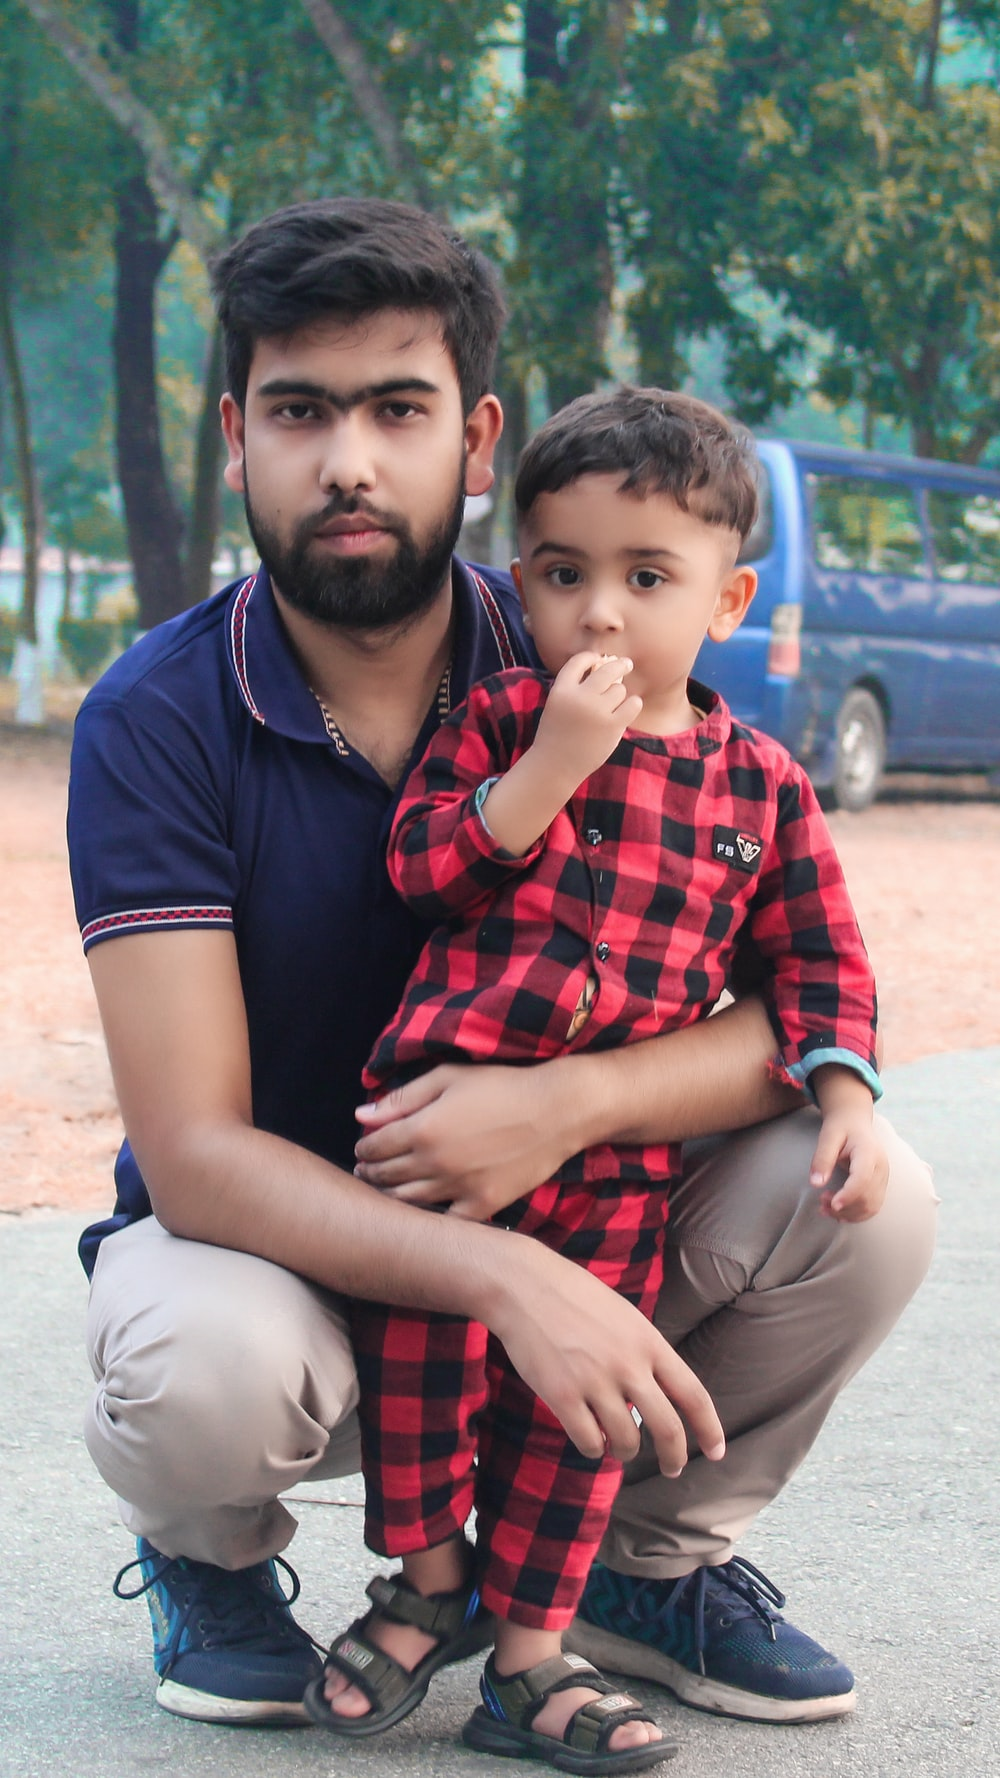 man in blue crew neck t-shirt sitting beside boy in red and black plaid button